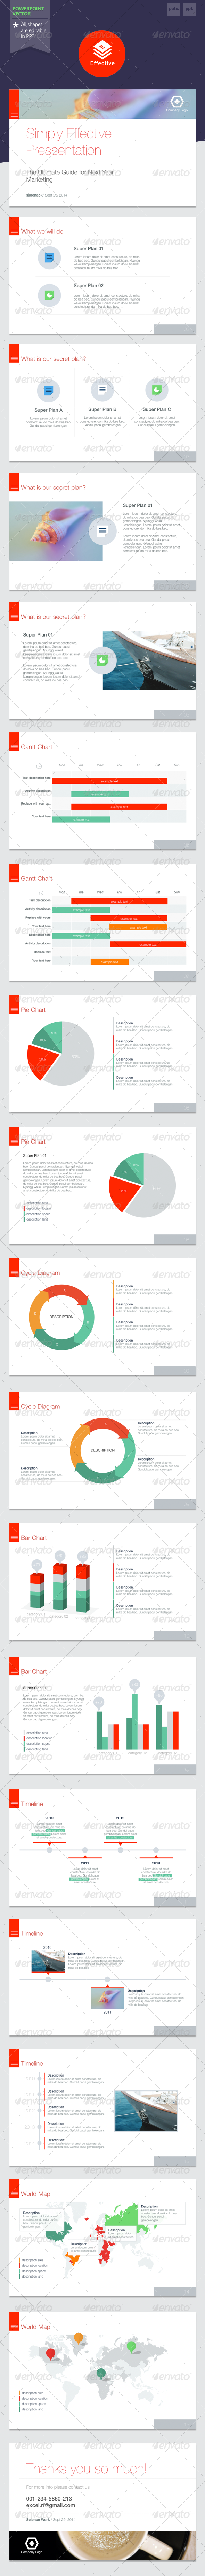 GraphicRiver Effective Powerpoint Template 5999312